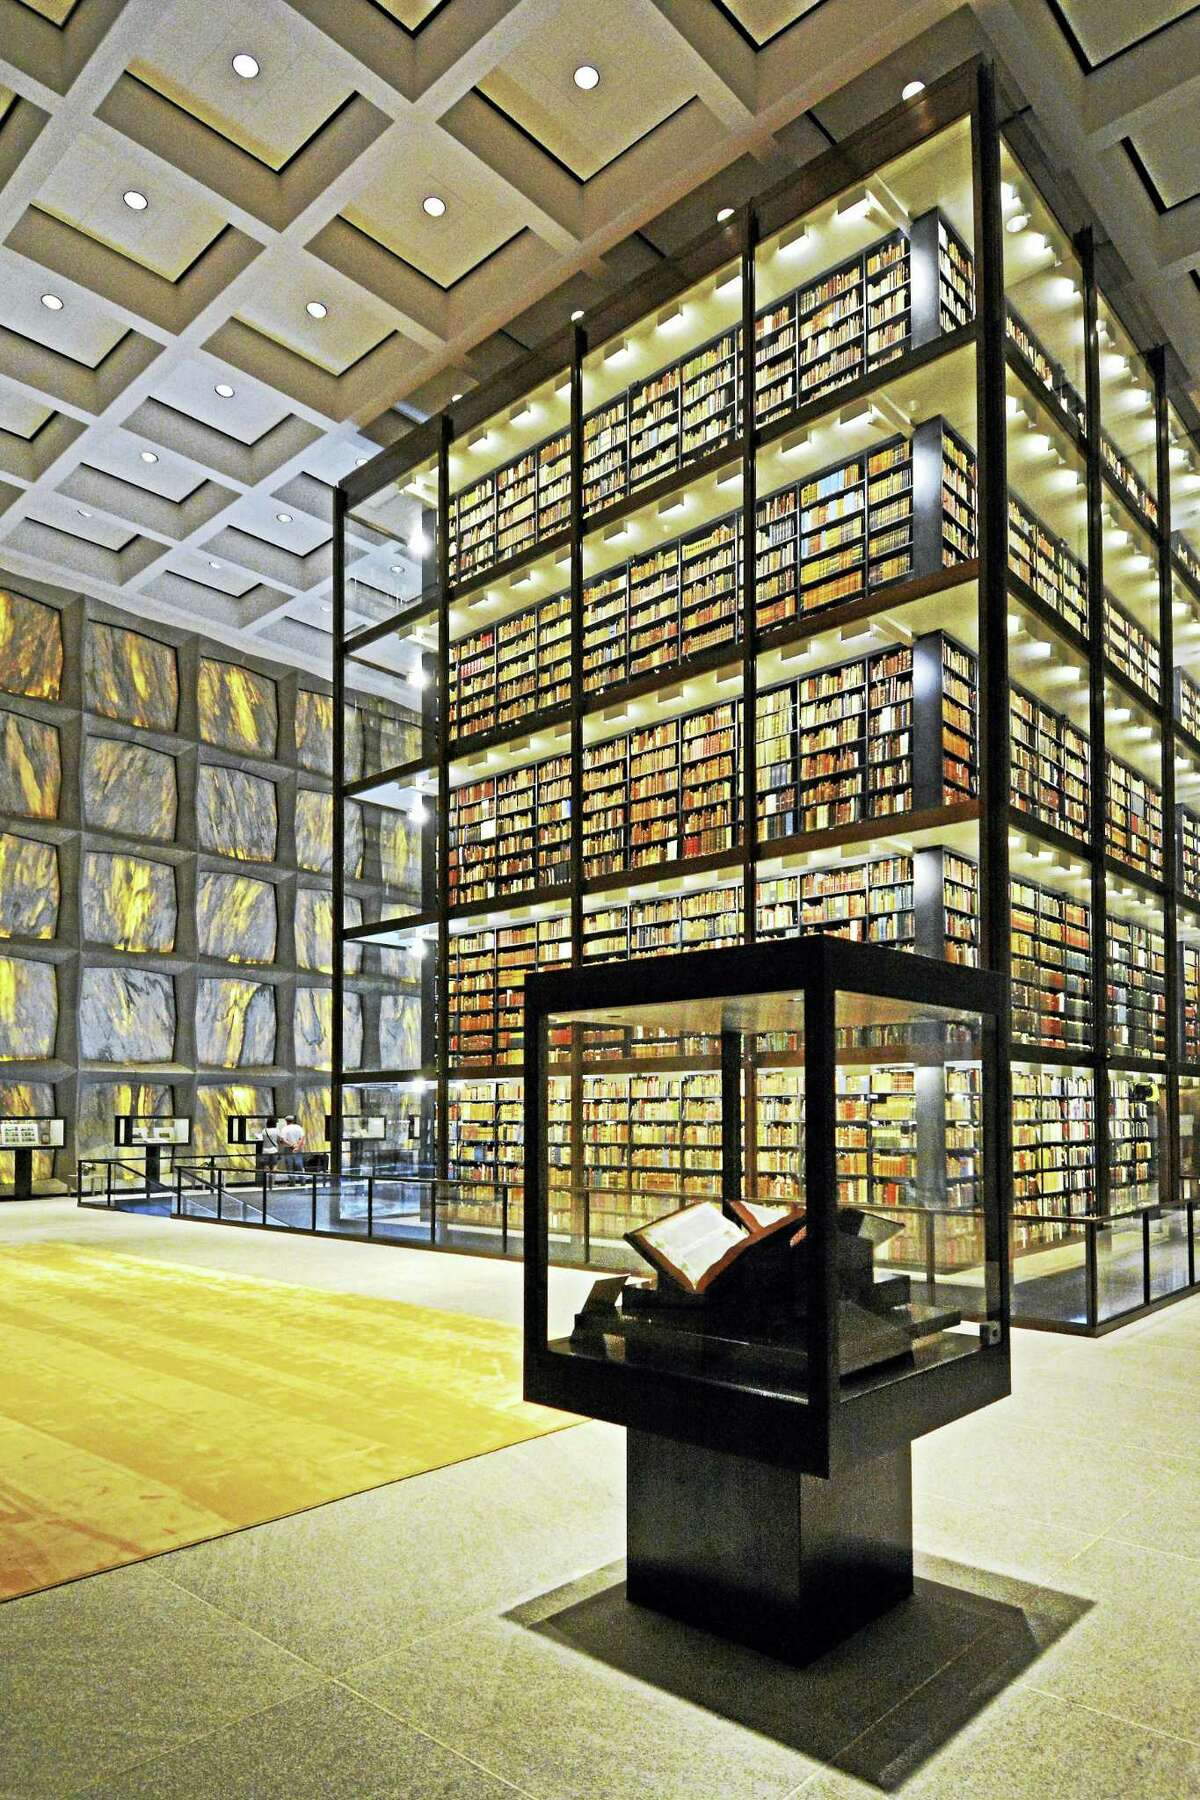 Restored and renovated Beinecke Rare Book and Manuscript Library, with exhibition cases surrounding the stacks and translucent marble wall panels.